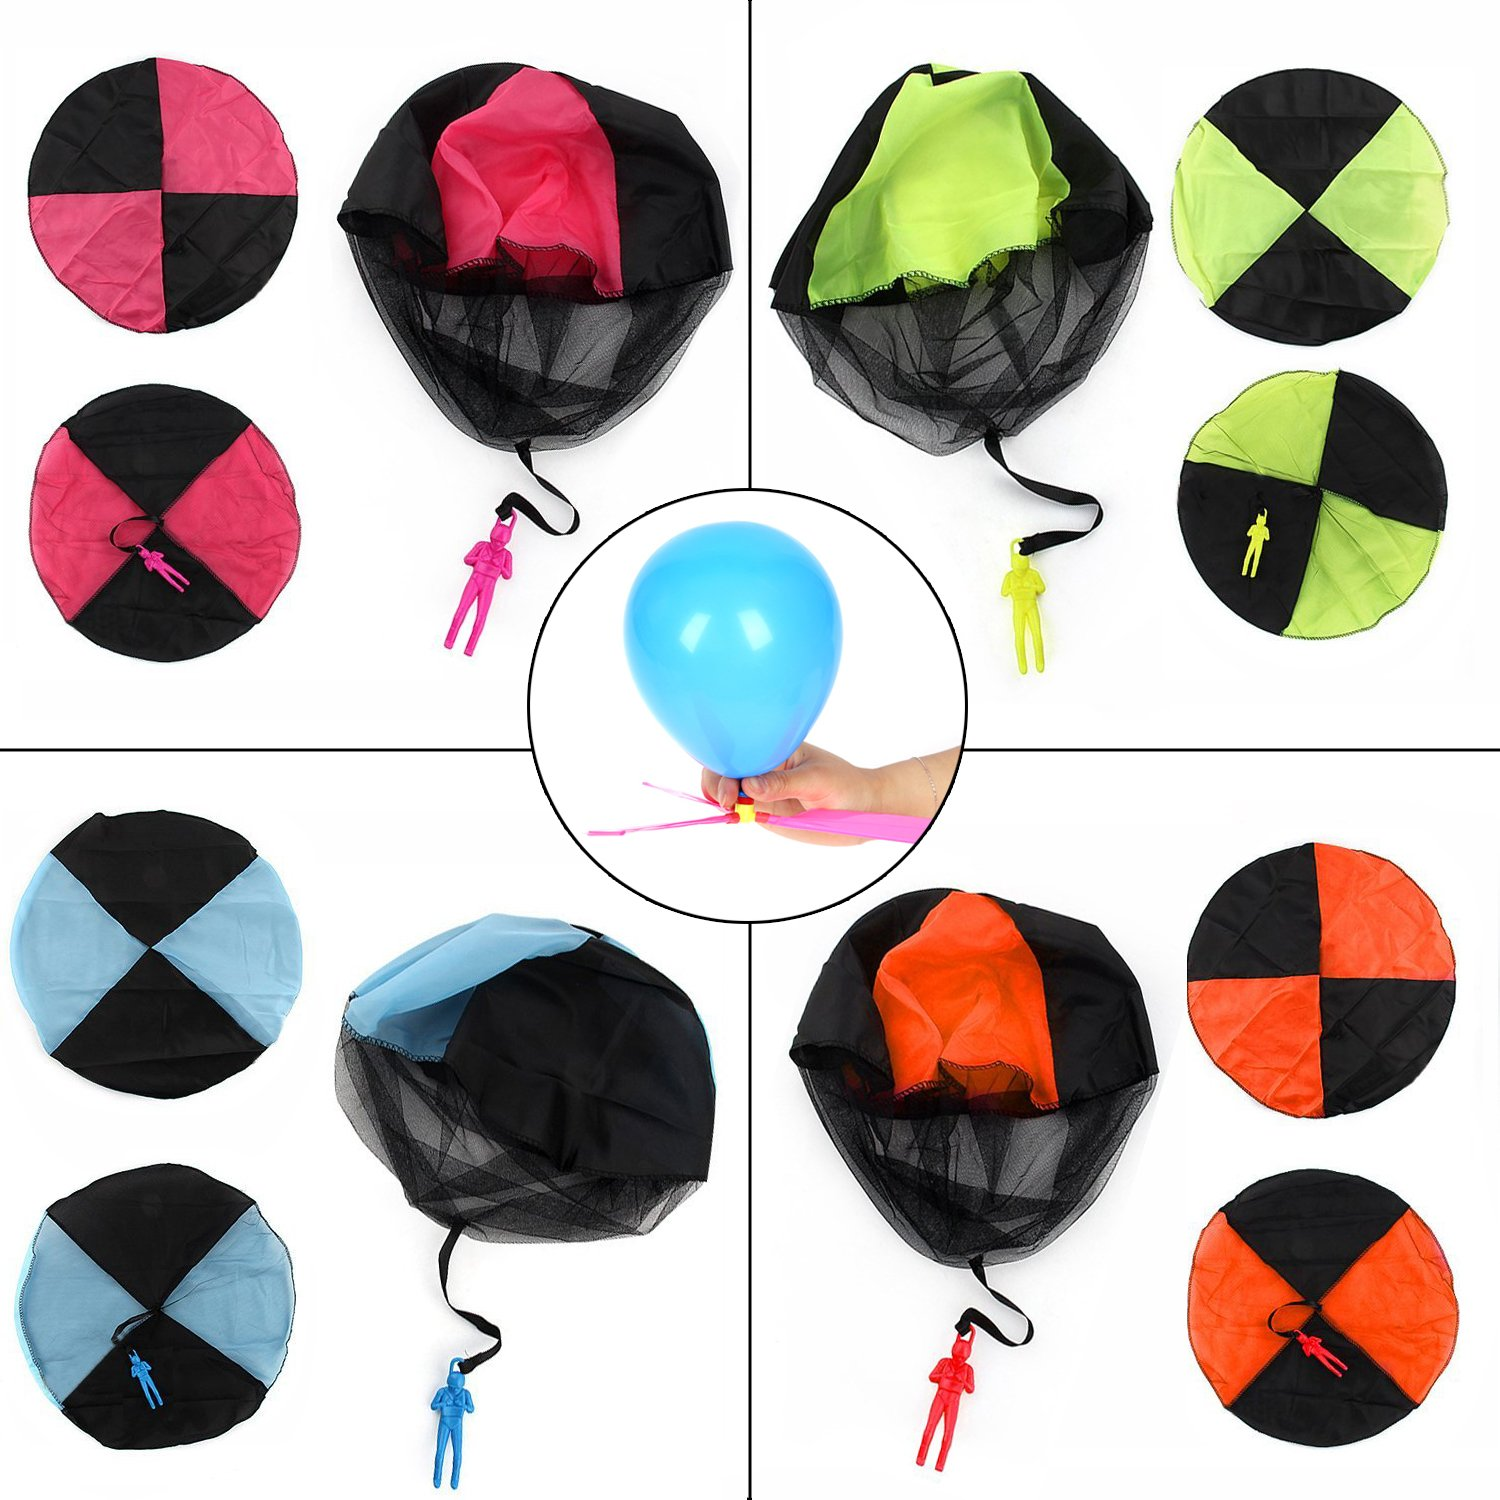 Qiwoo 5 Pack Flying Toy Parachute Balloon Helicopter Toys for Kids 4 Colors Mini No Tangle Throwing Flying Parachute Army Man Sports  Outdoor Play for Childrens Boys Girls Teens Party Favors by Qiwoo (Image #6)